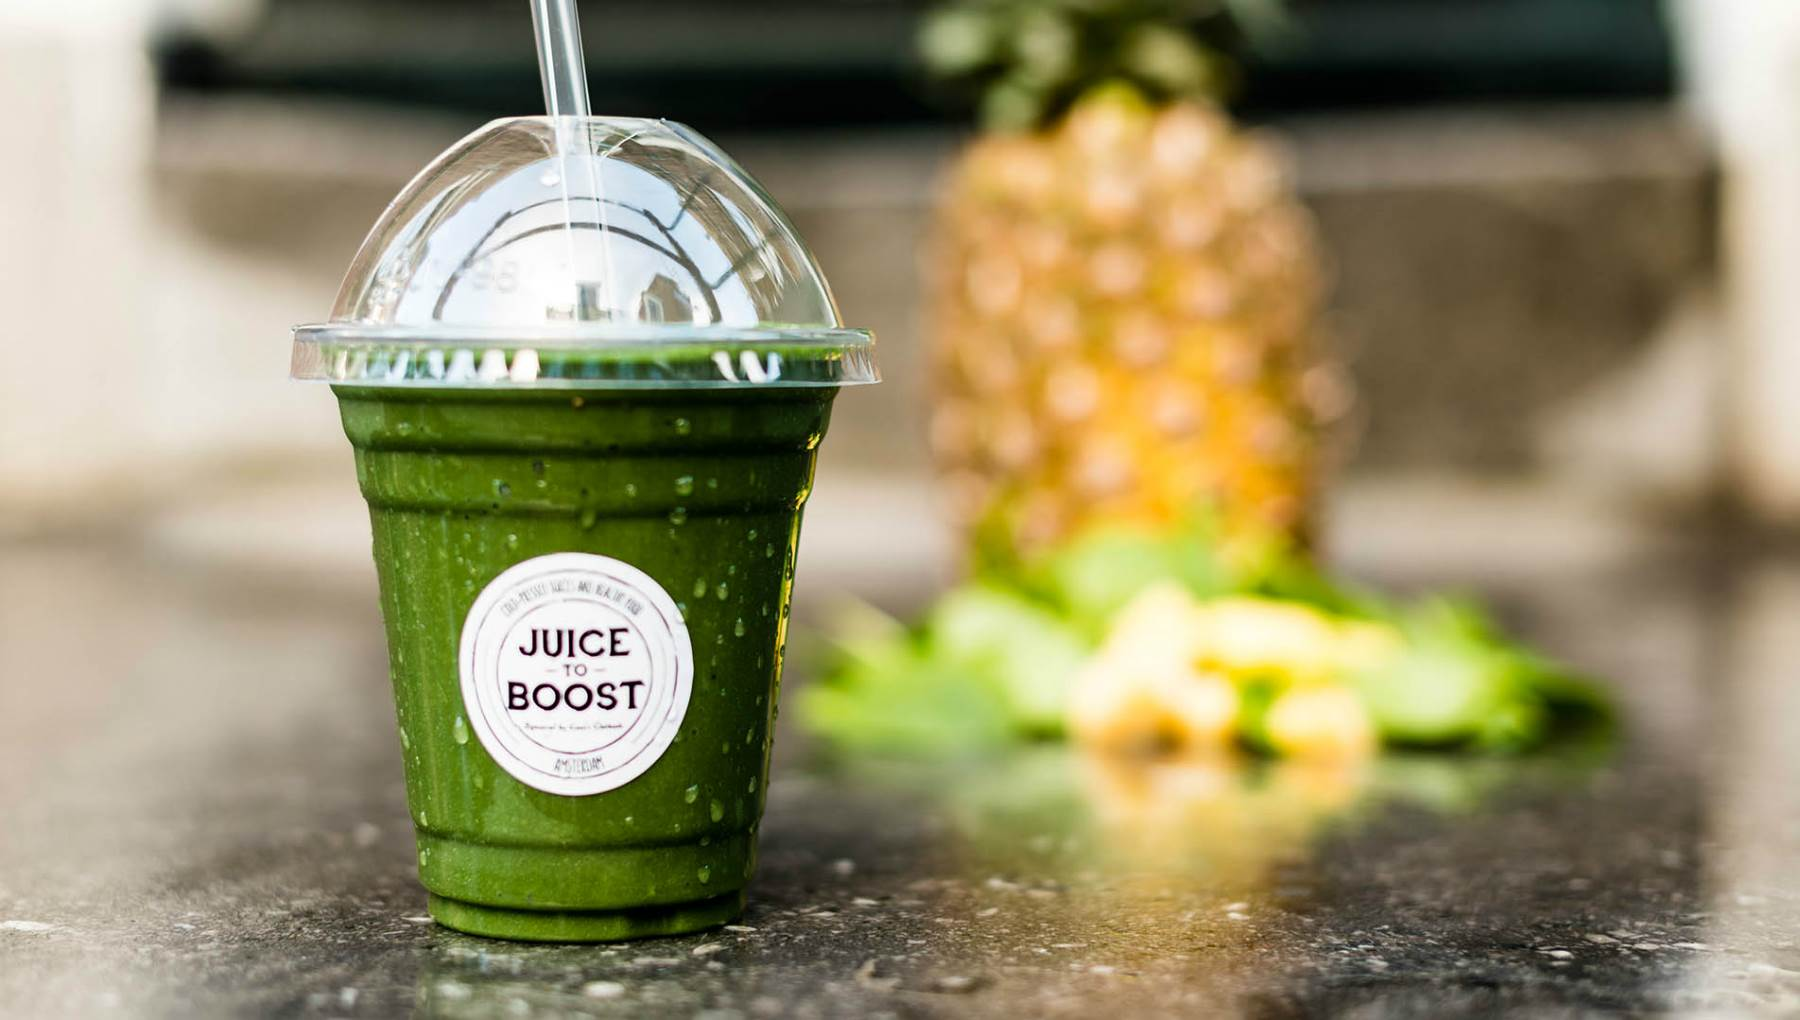 Juice To Boost - Healthy Green